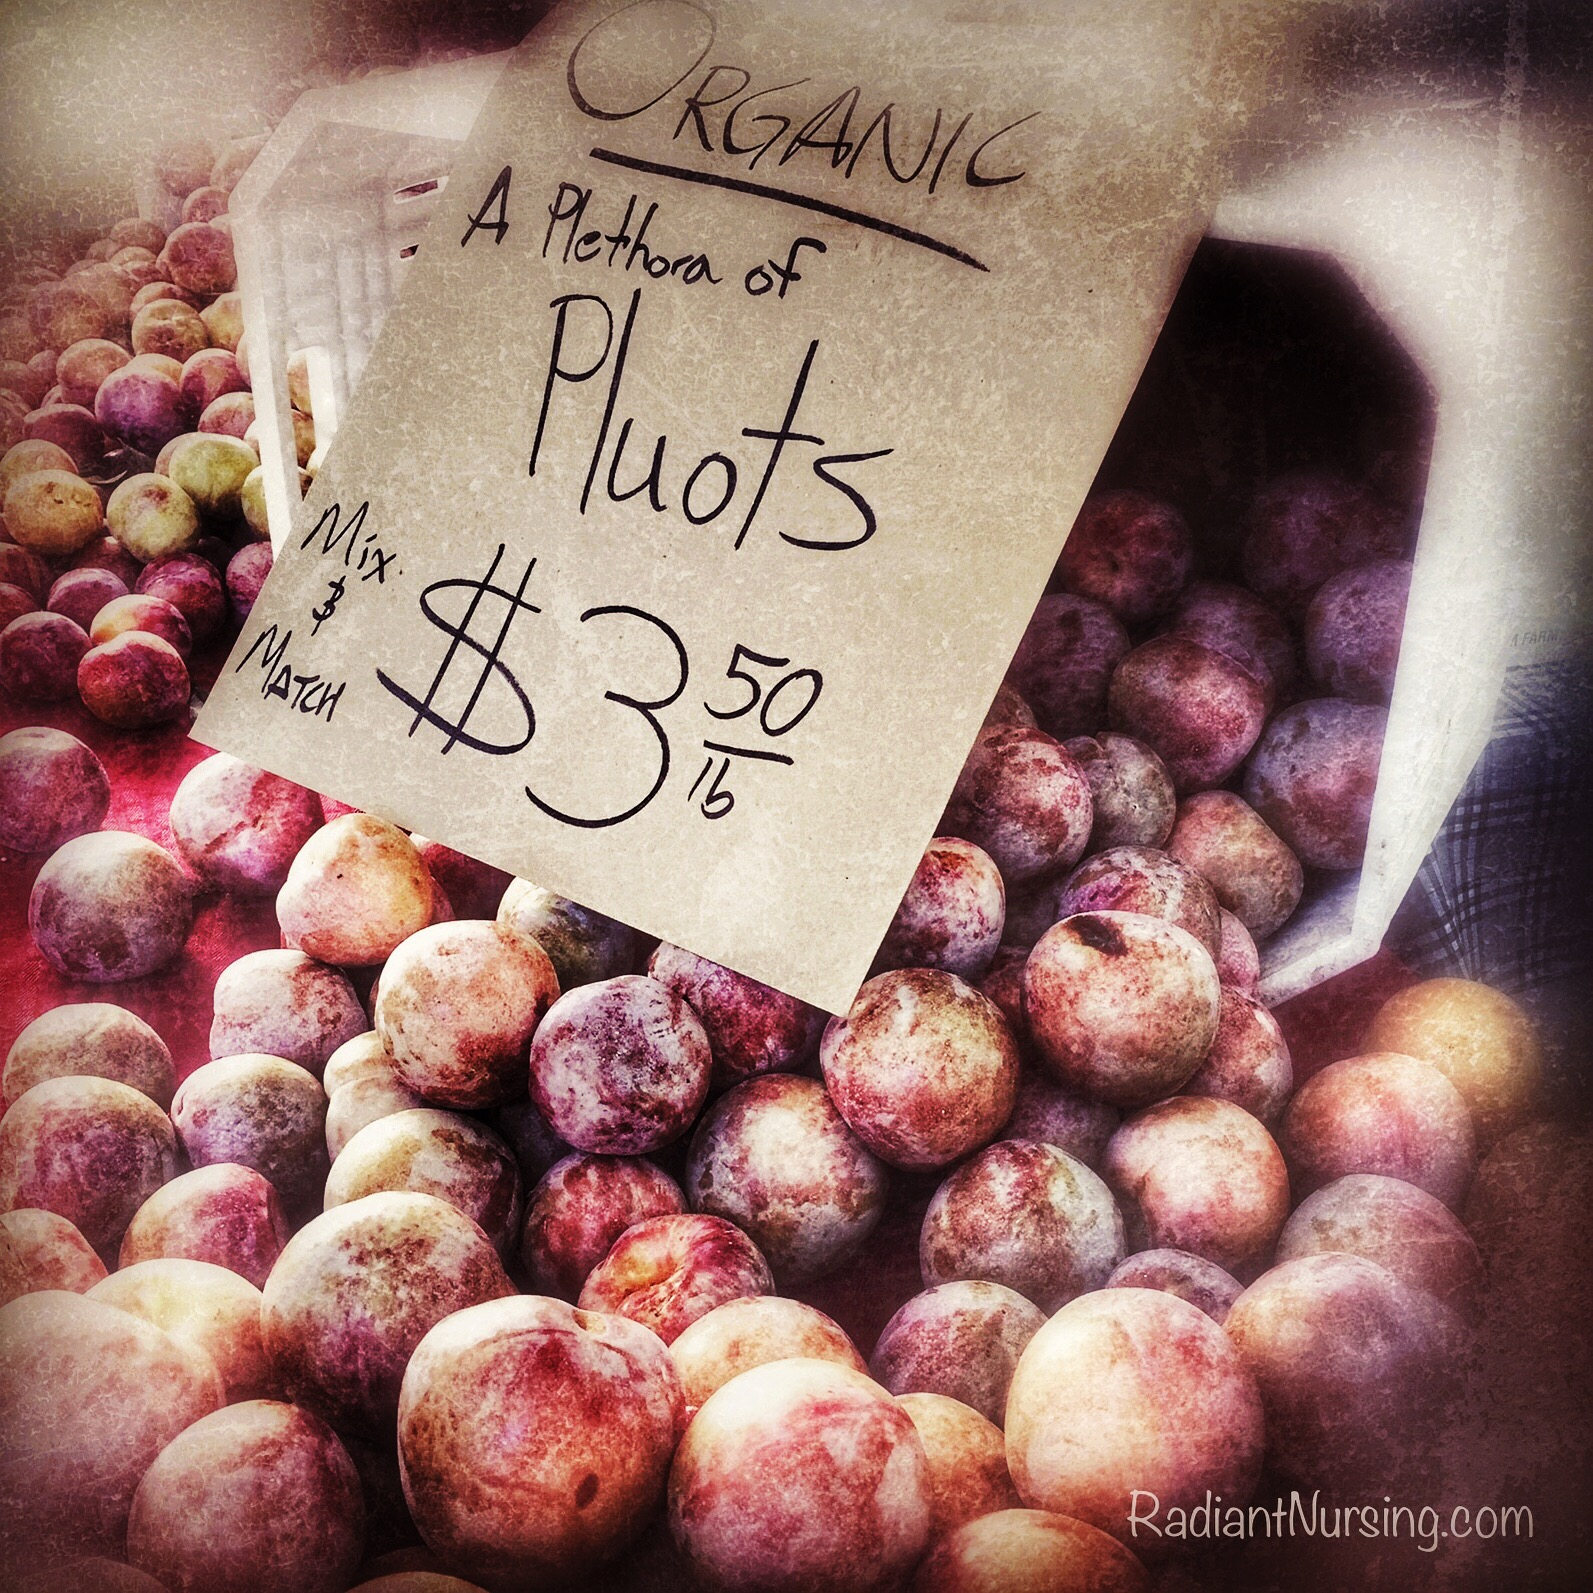 A vendor with a sense of alliteration. Selling pluots at the Davis farmers market.